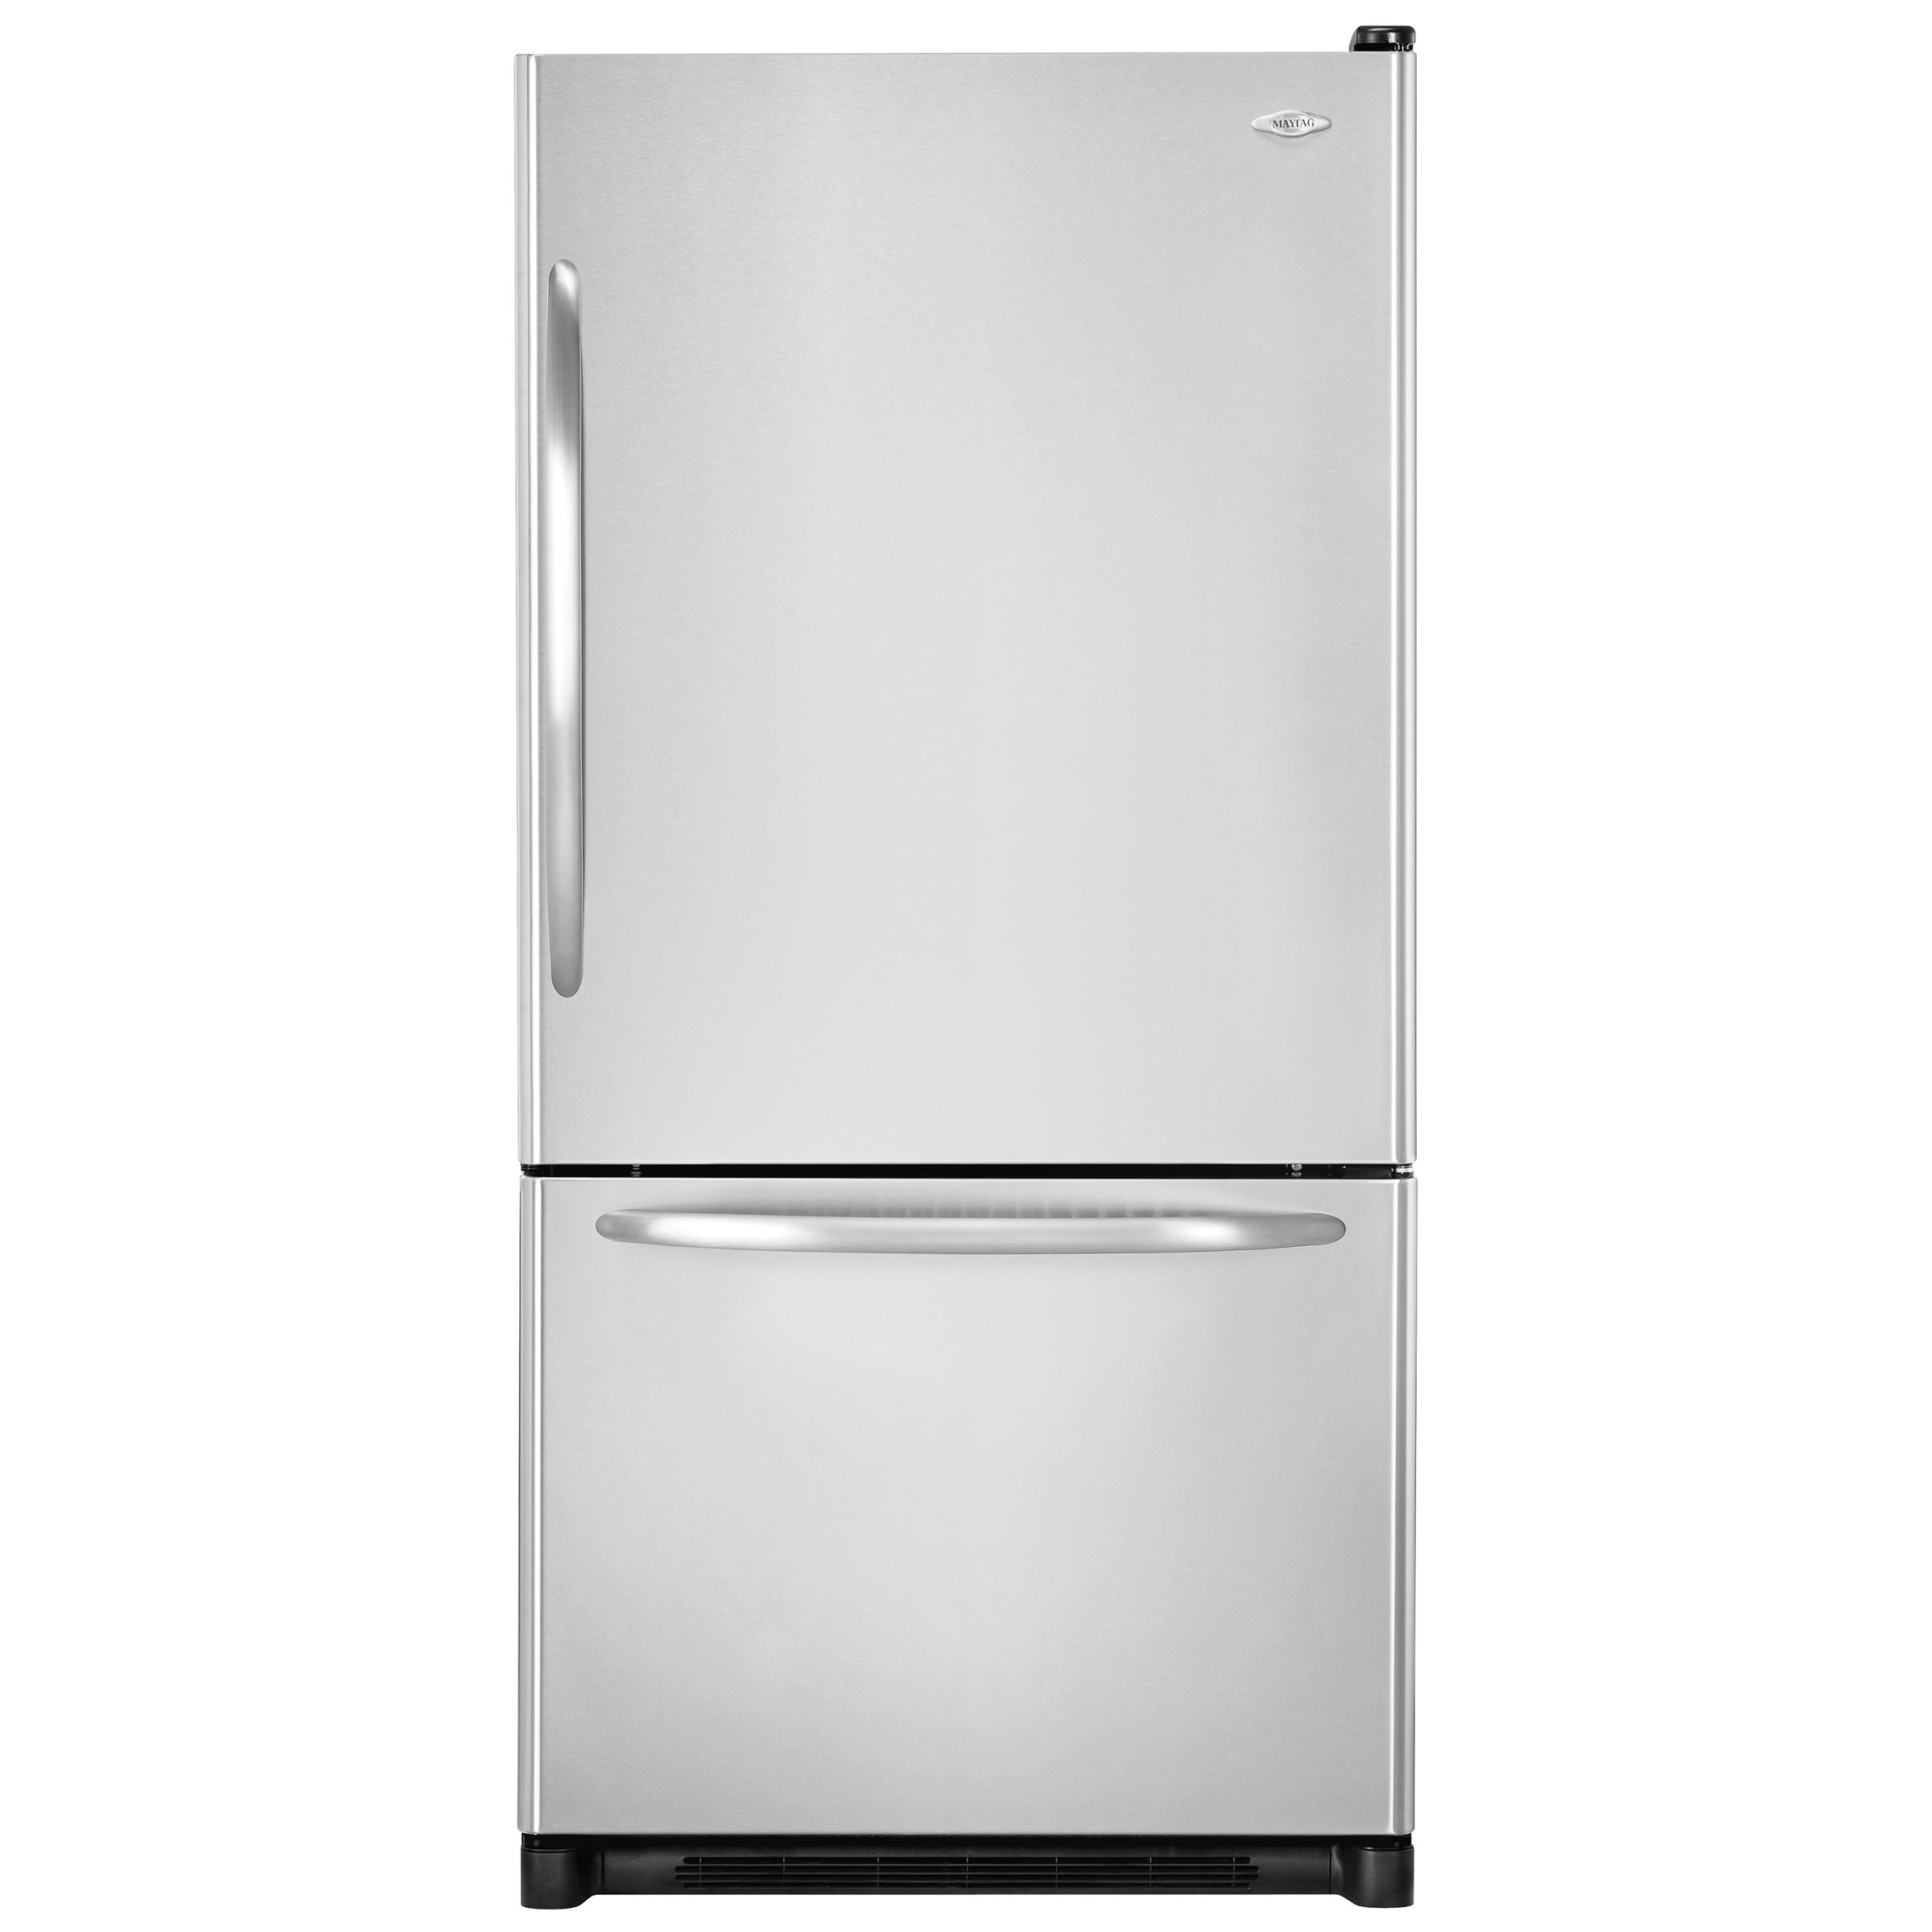 Kmart Freezer Maytag Bottom Freezer Refrigerator 21 9 Cu Ft Mbr2256ke